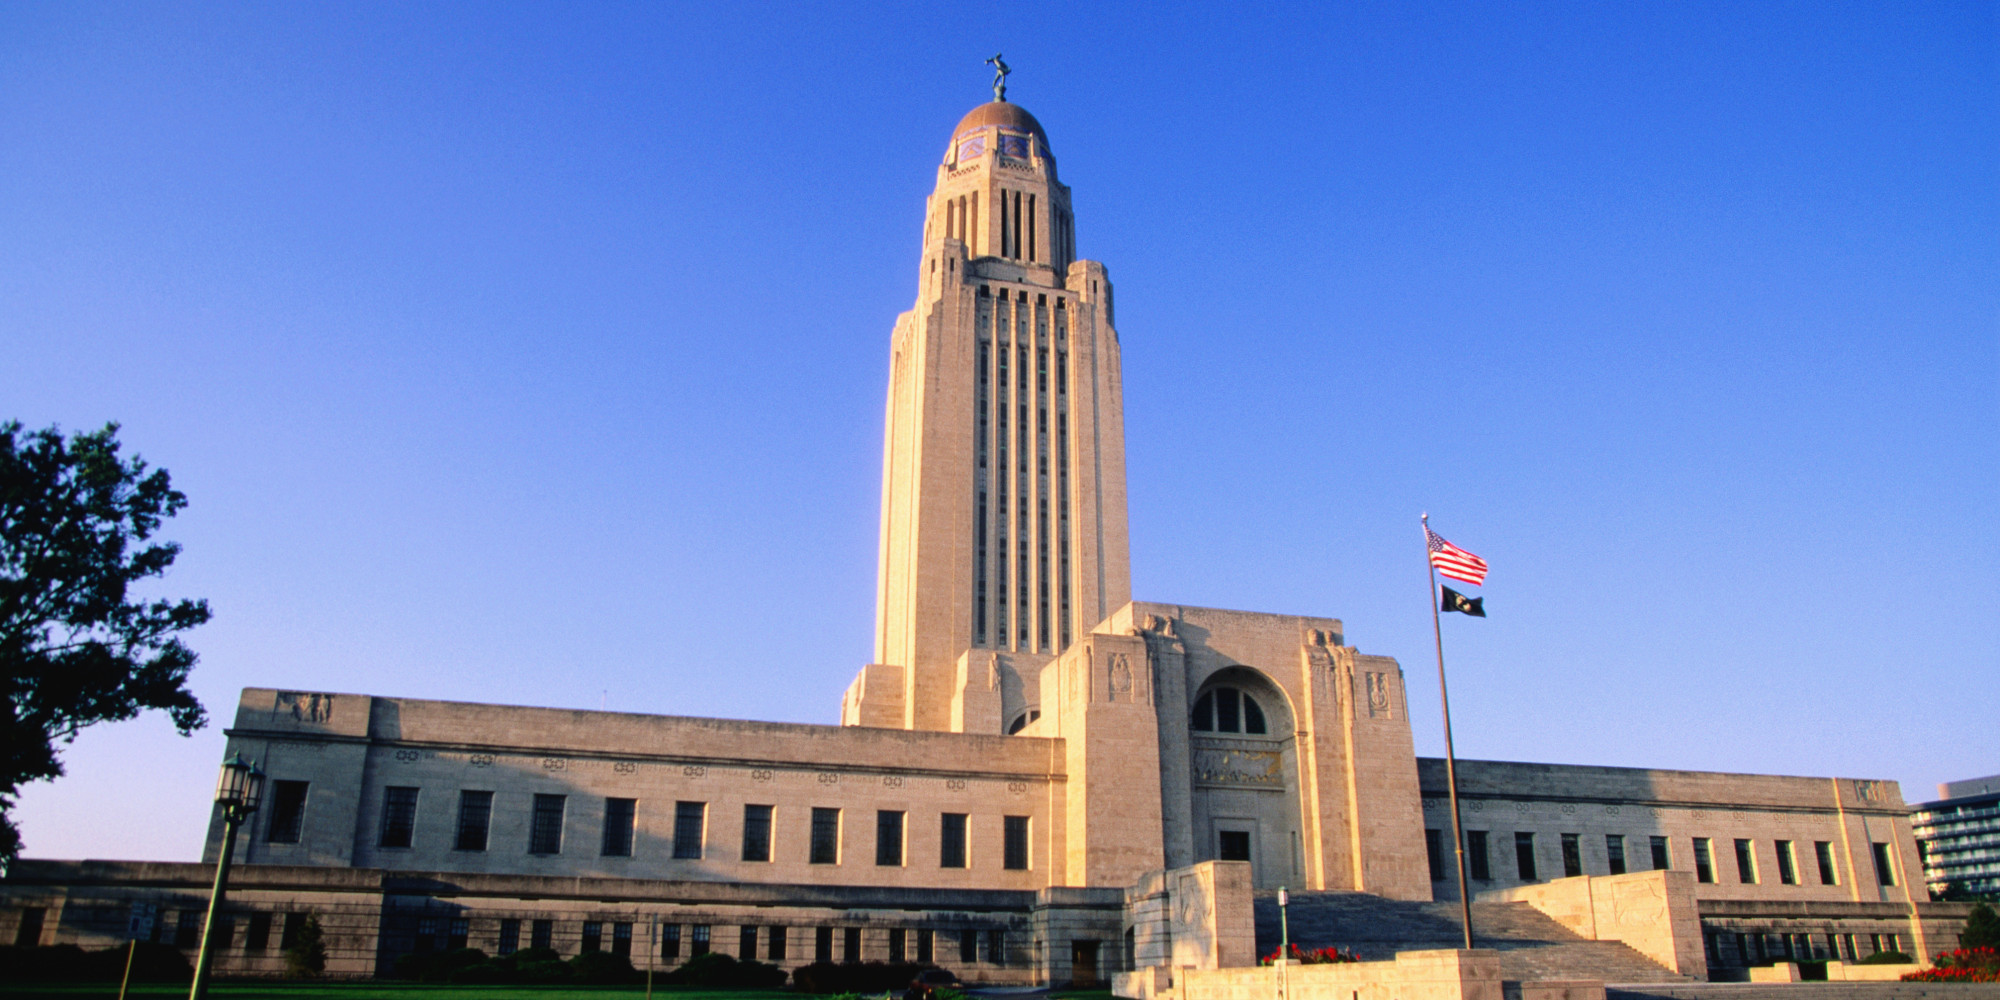 Cost Of Moving >> Medicaid Expansion Ads Target Nebraska As Red States Weigh Obamacare Benefits | HuffPost